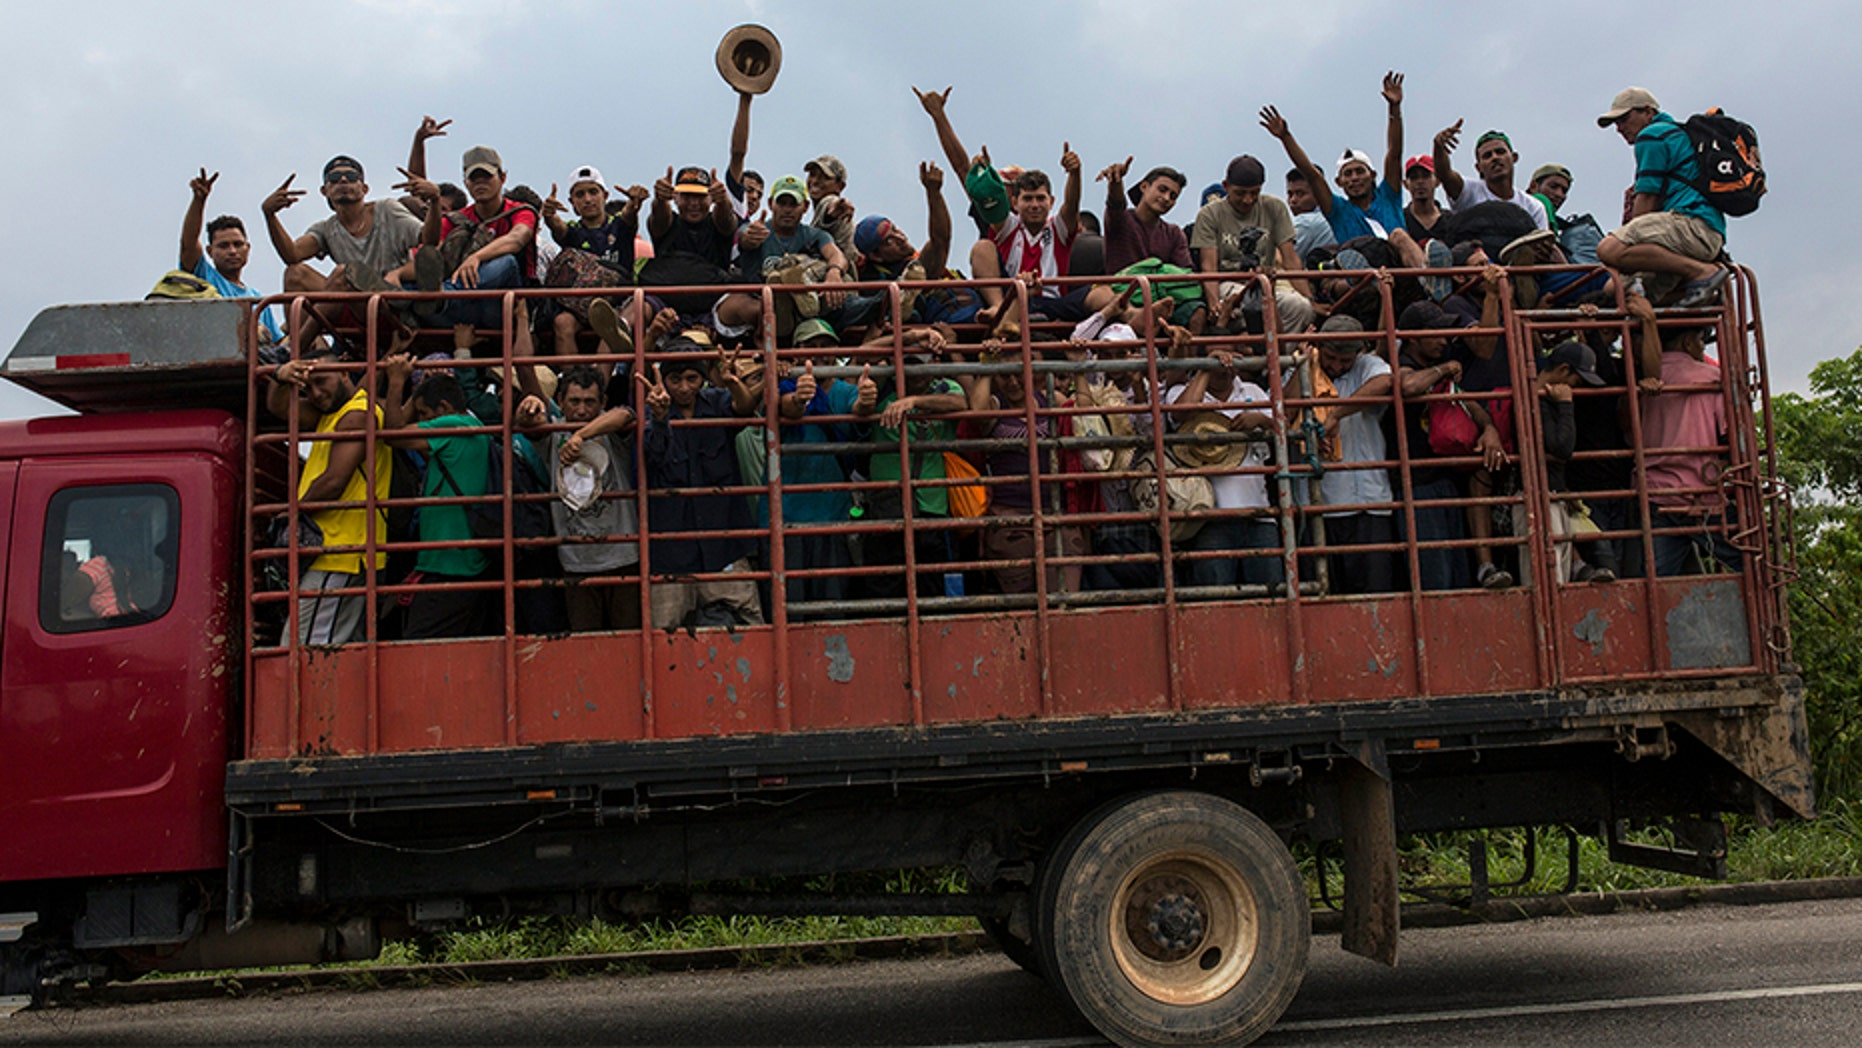 Members of one of the migrant caravans riding on a truck in Donaji Mexico last week